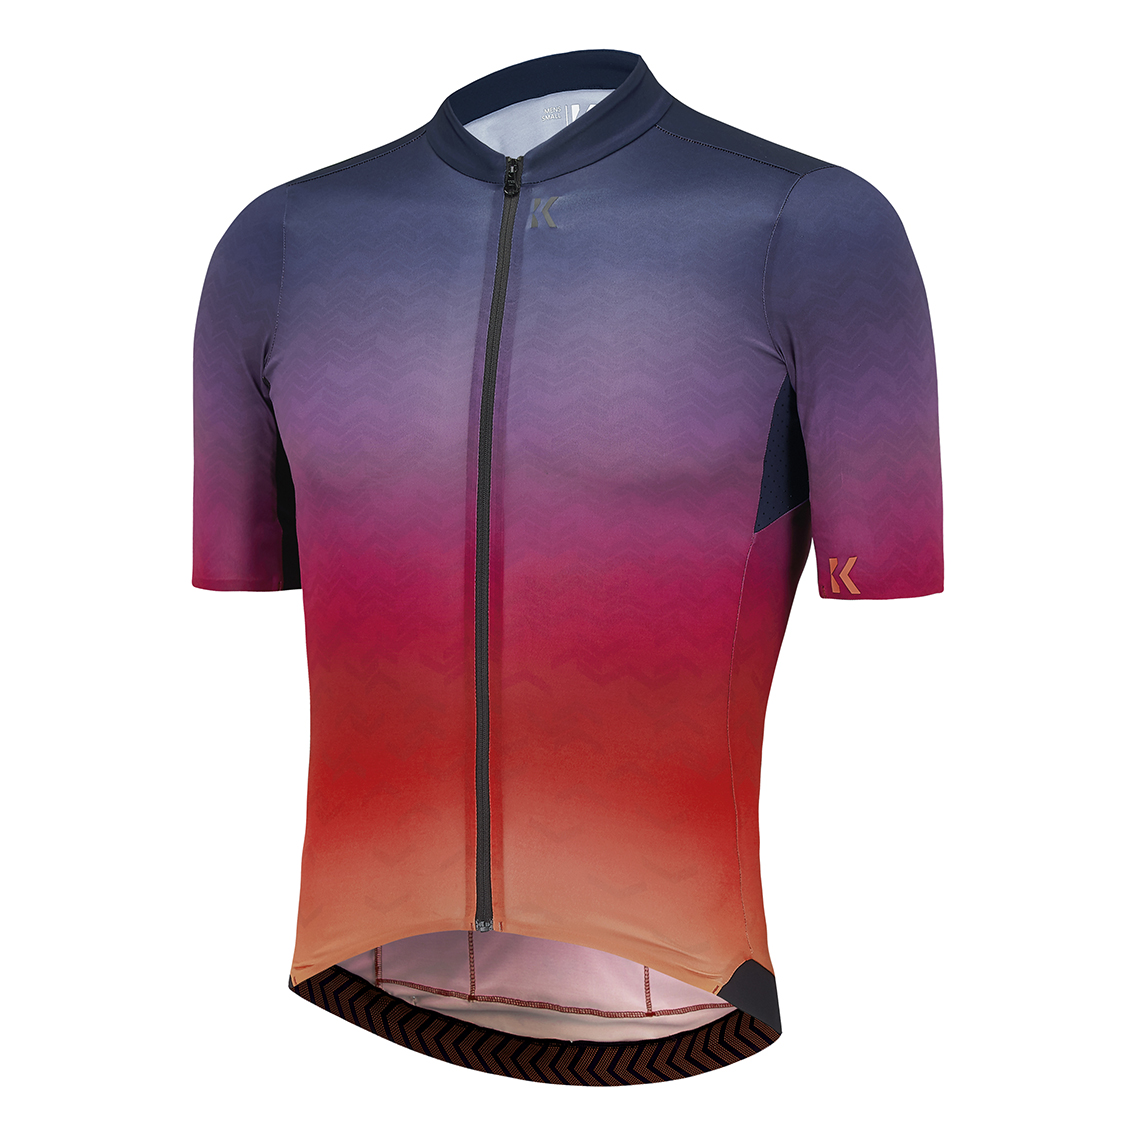 All Kalf products are exclusively available in the UK through Evans Cycles.  For more information on the Kalf 2018 Spring Summer clothing collection 88691bf15